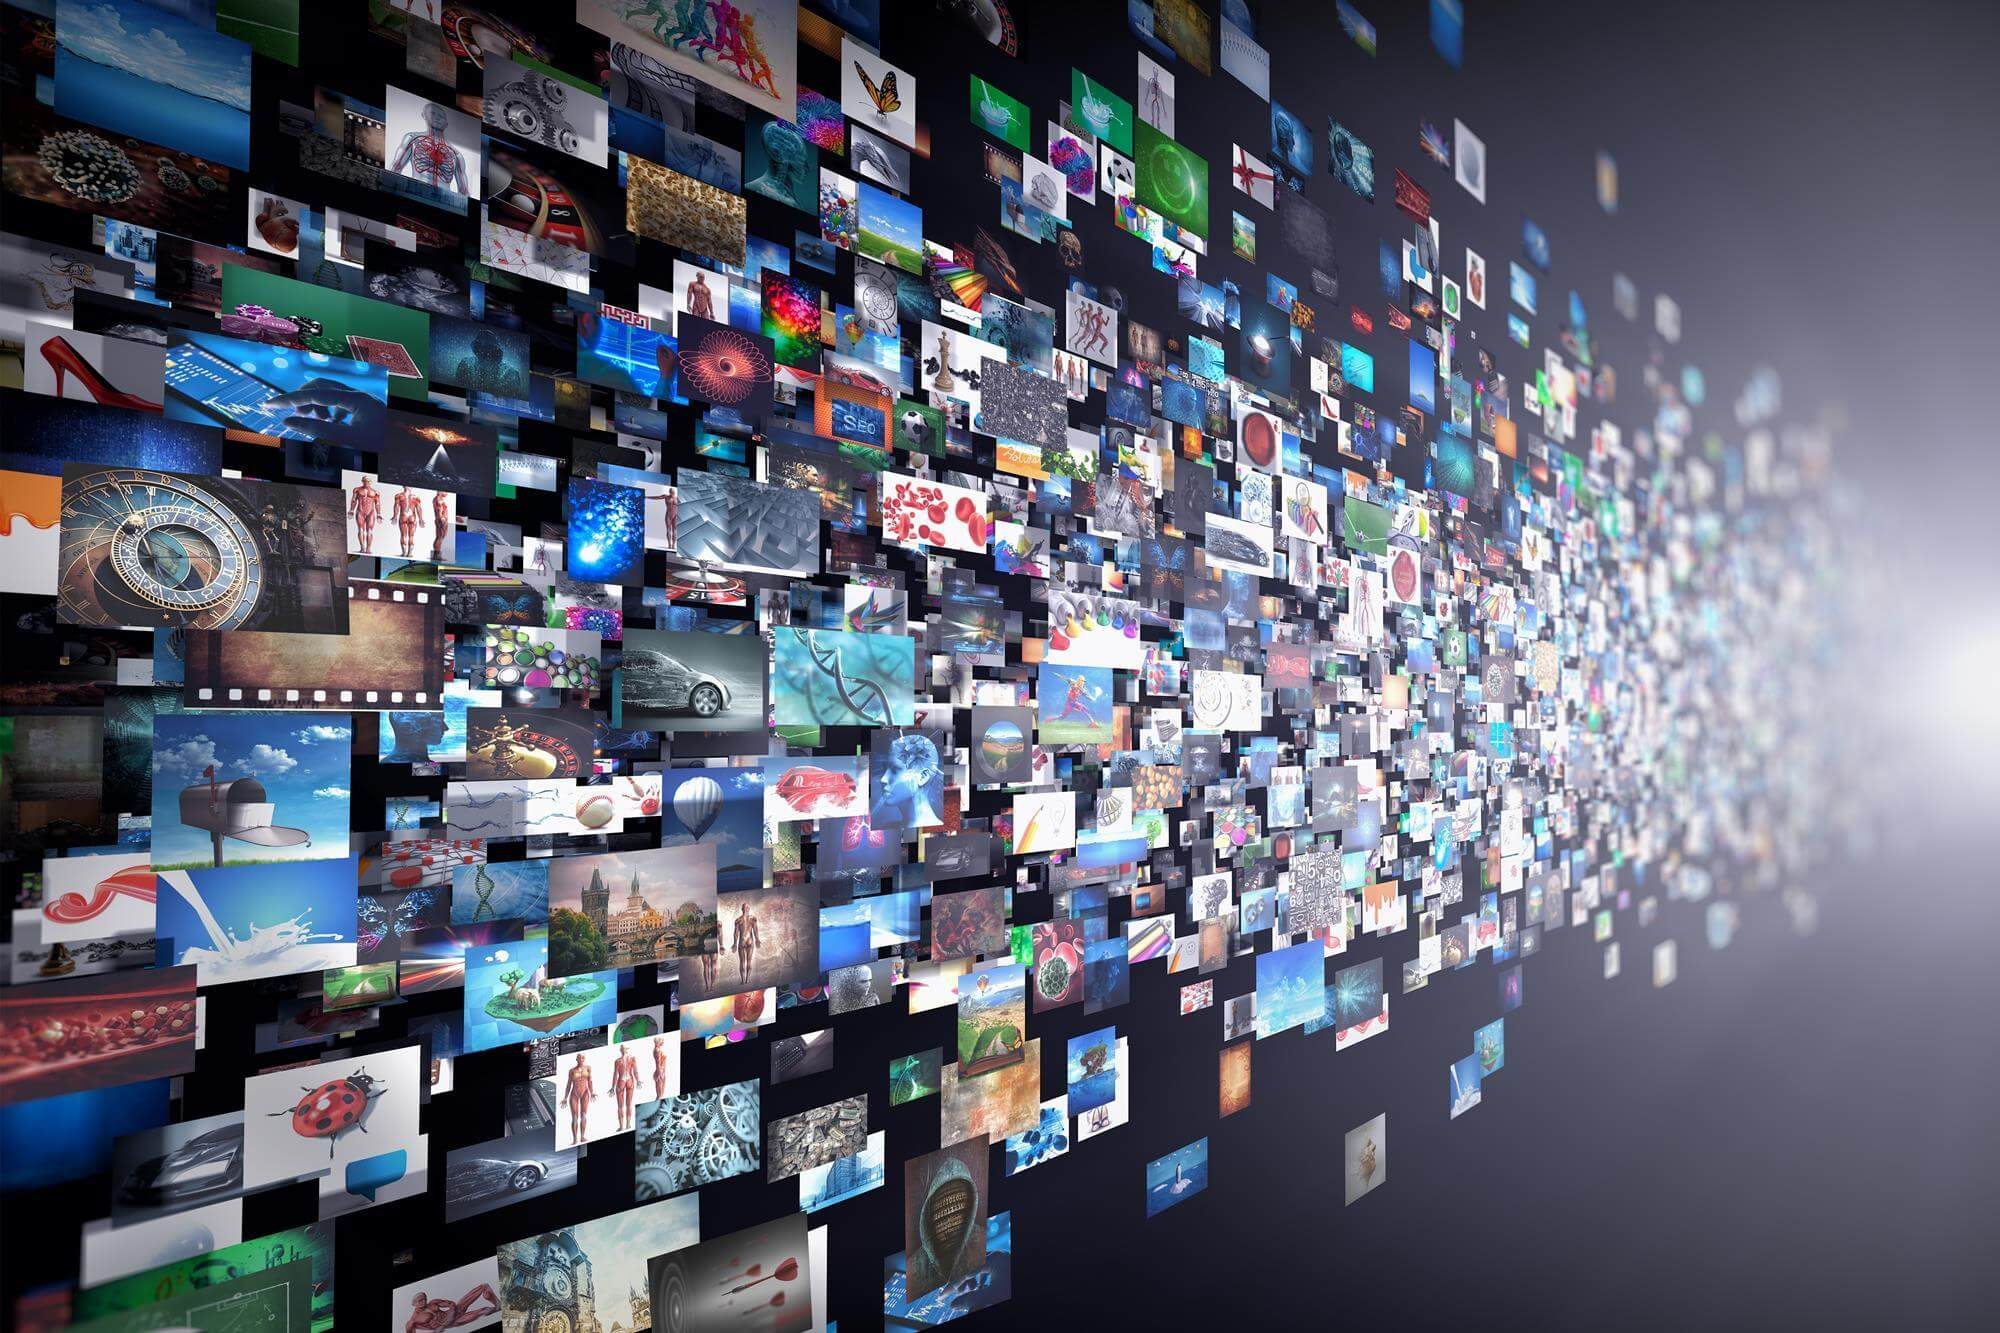 New H.266 VVC codec shows promise for 4K and 8K streaming